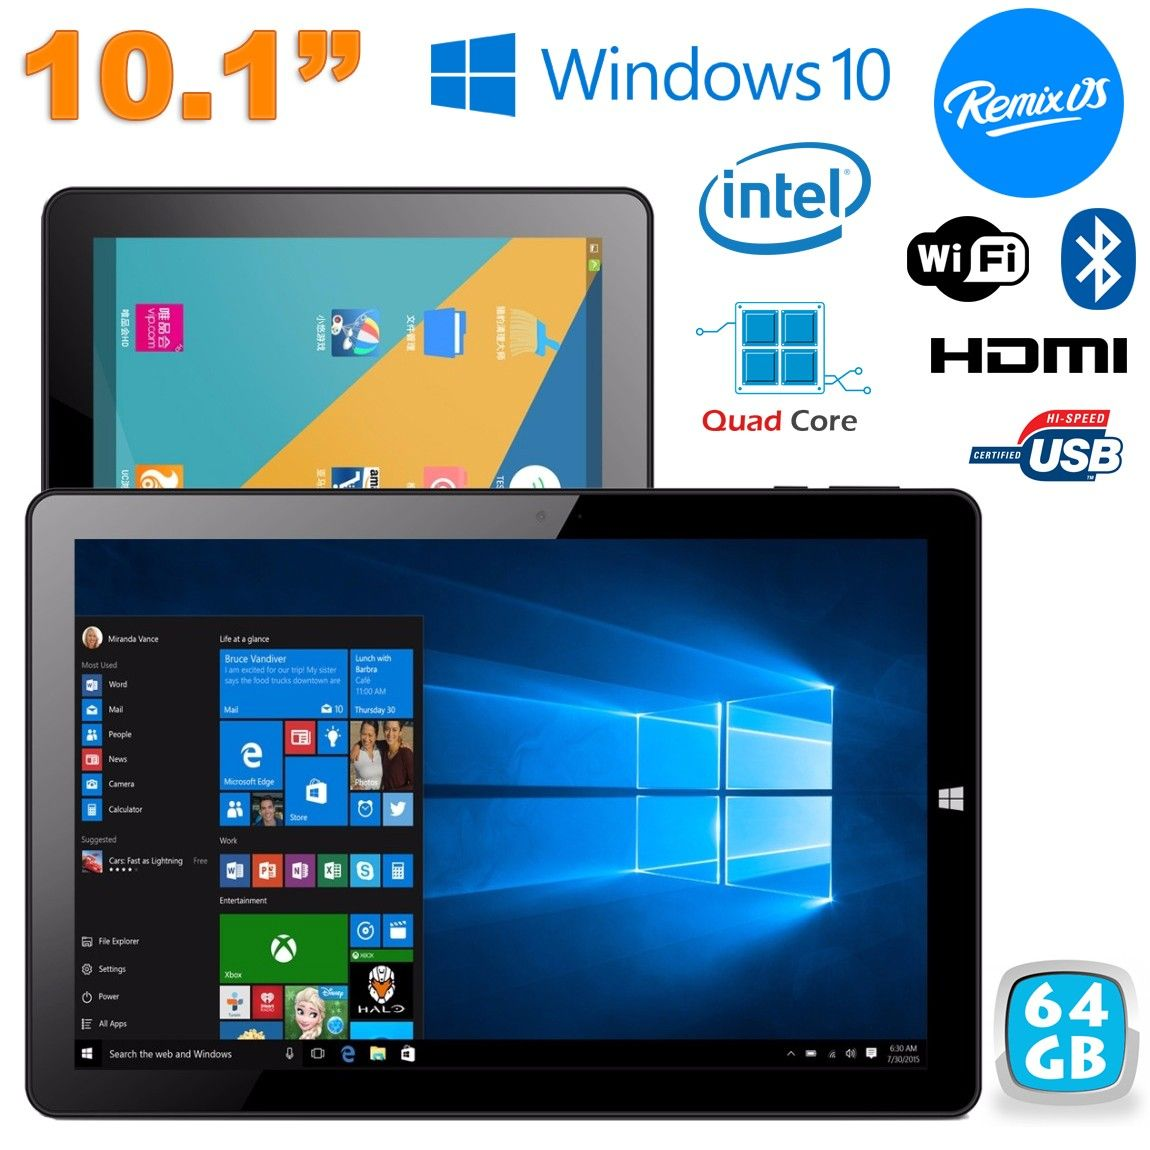 Tablette Dual Boot Windows 10 + Remix OS 2.0 4Go RAM 10.1 pouces 64Go